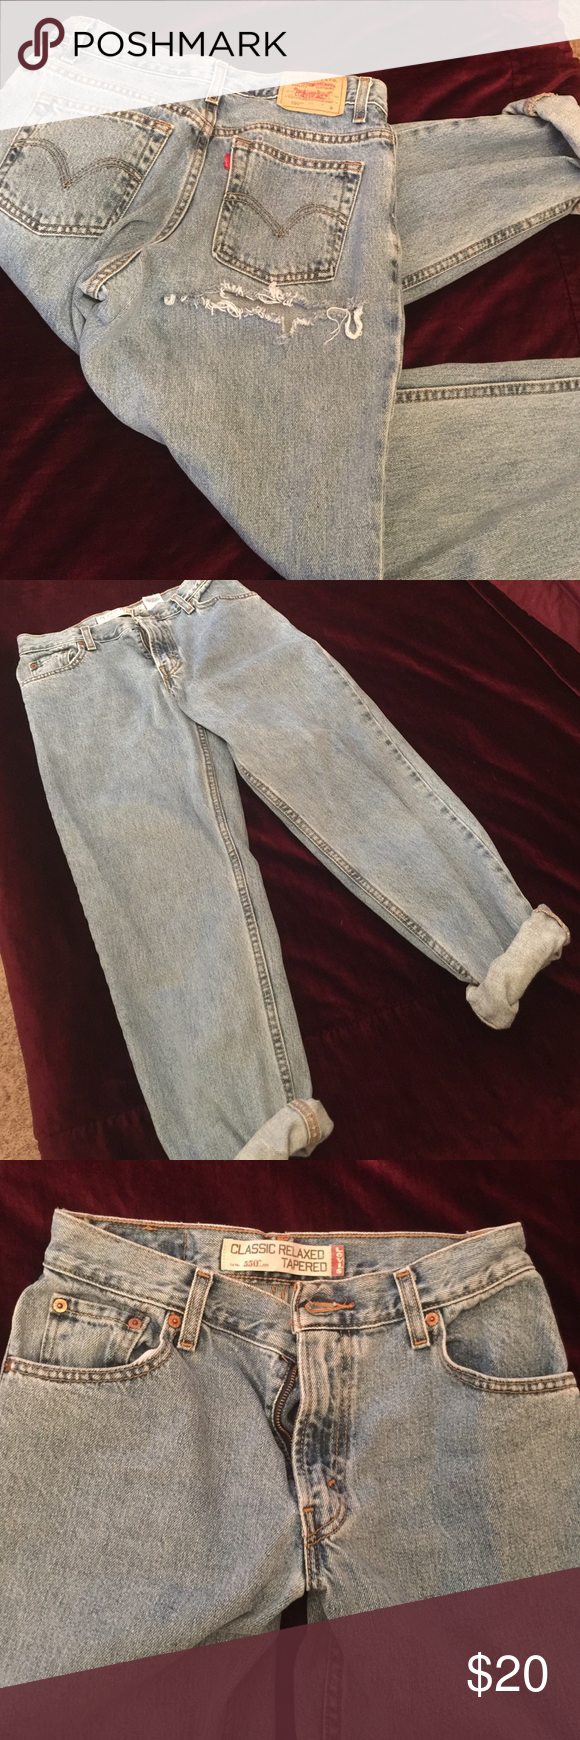 Levi 550 jeans good condition. custom rip in the butt, fit a size 26-27 women. Levi's Jeans Boyfriend